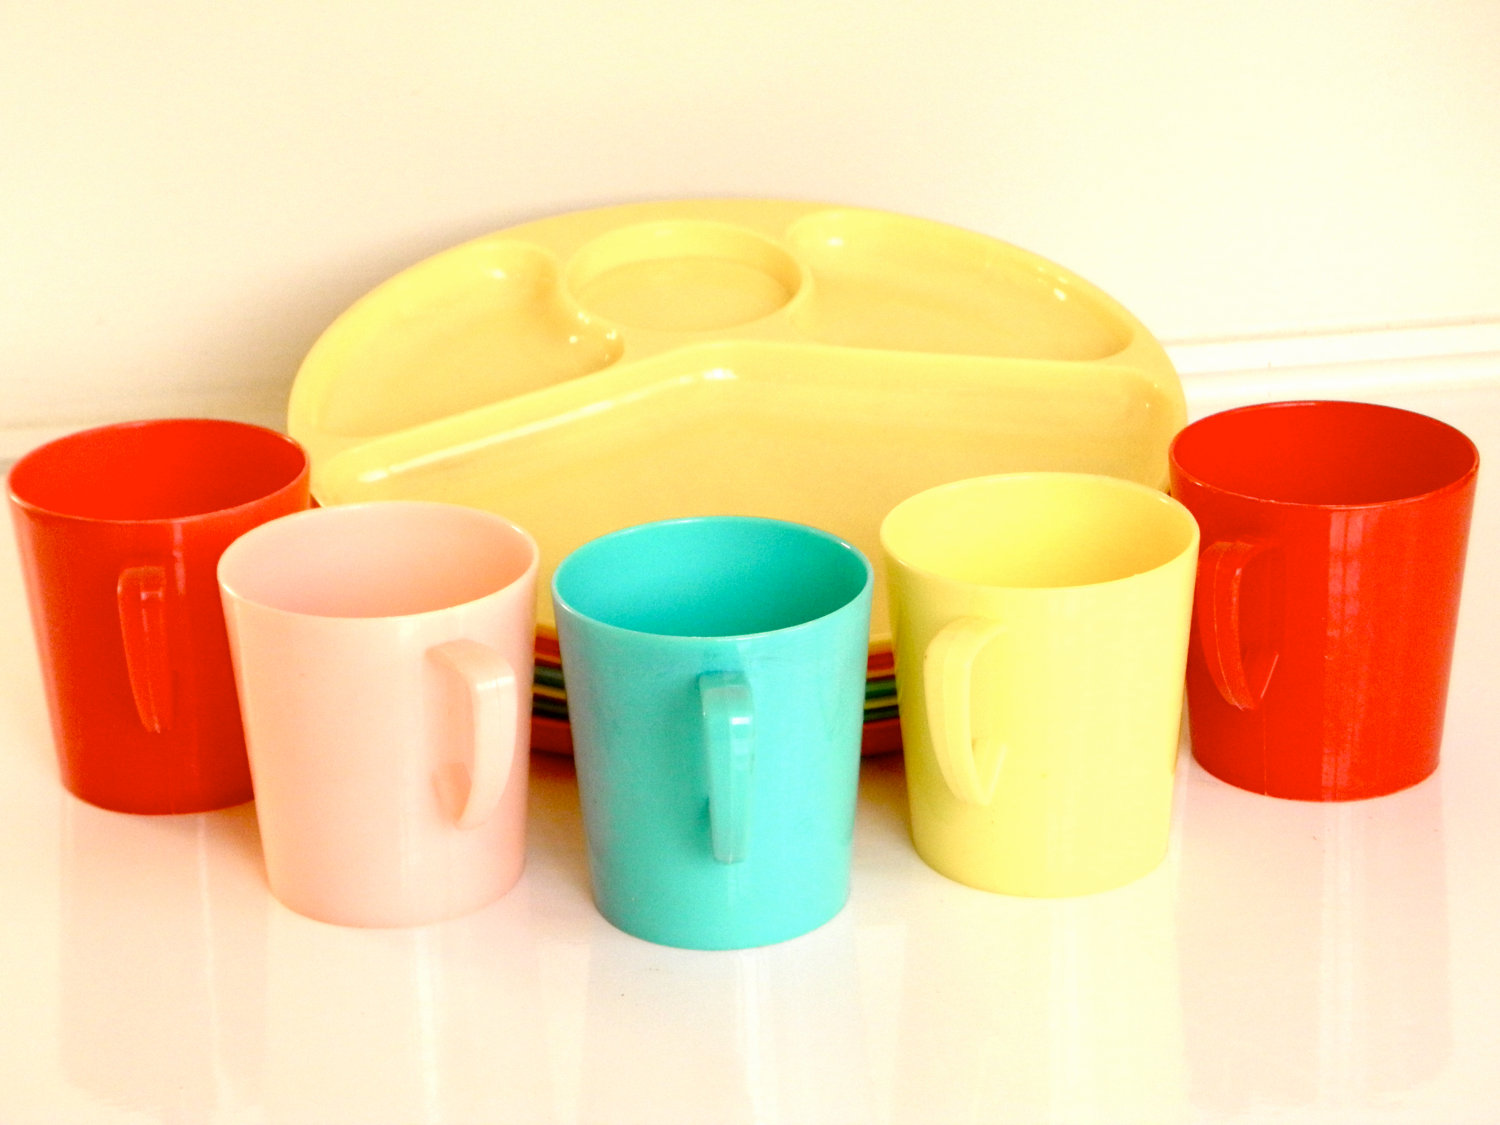 Vintage Gothamware Picnic Set of Colorful Plastic Melamine Plates and Cups & Vintage Gothamware Picnic Set of Colorful Plastic Melamine Plates ...